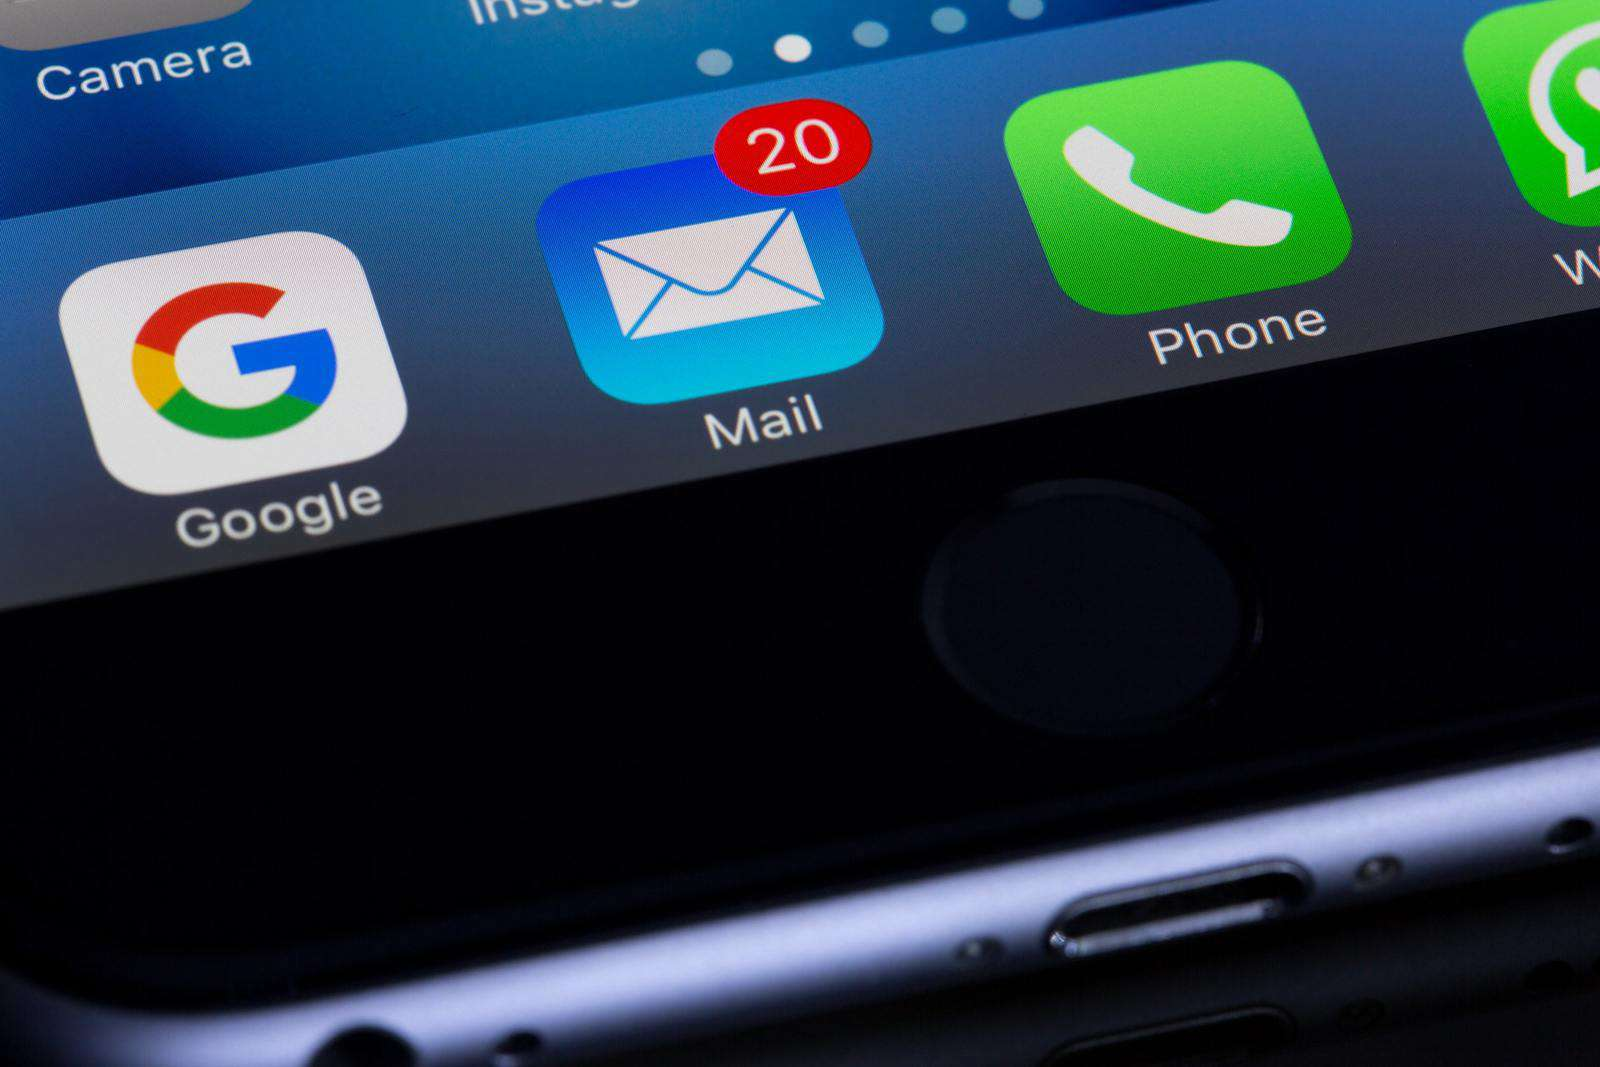 Email app on phone